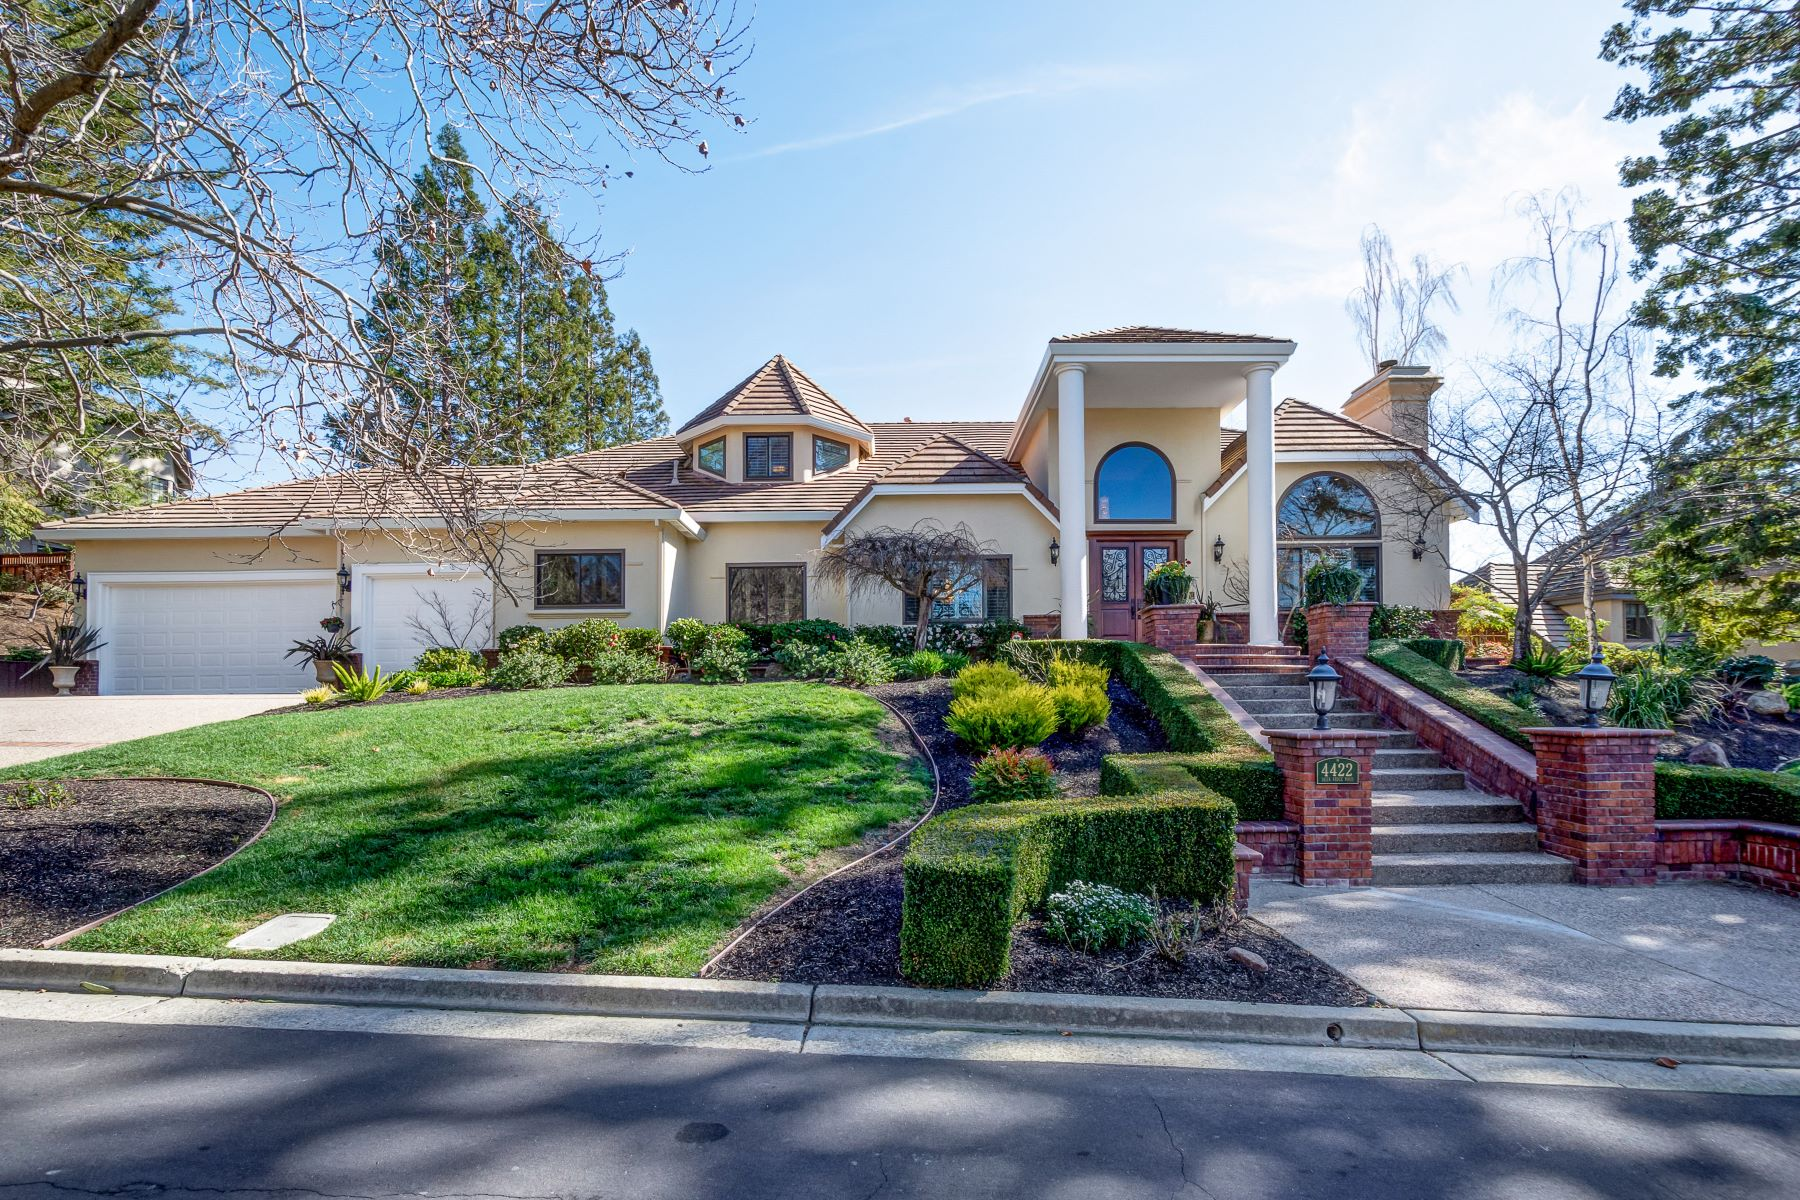 Single Family Homes for Sale at 4422 Deer Ridge Road, Danville, CA 94506 4422 Deer Ridge Road Danville, California 94506 United States